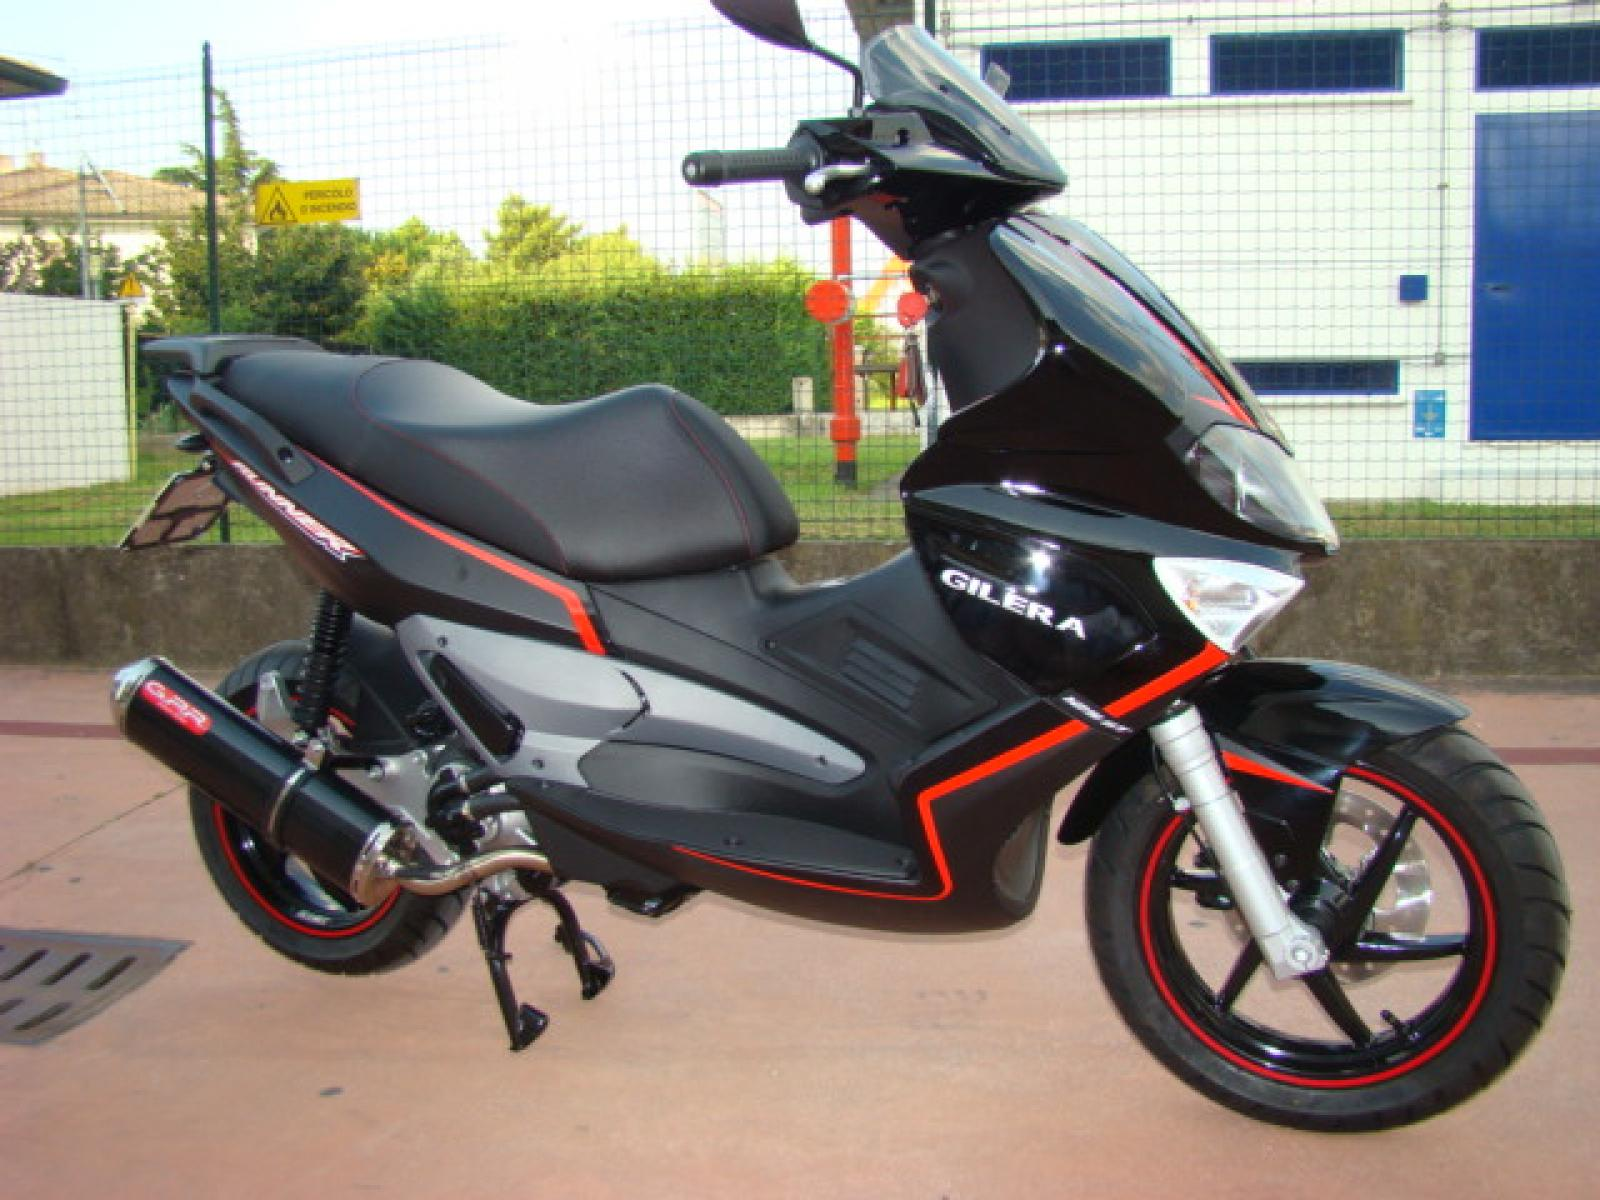 2011 gilera runner st 125 moto zombdrive com. Black Bedroom Furniture Sets. Home Design Ideas